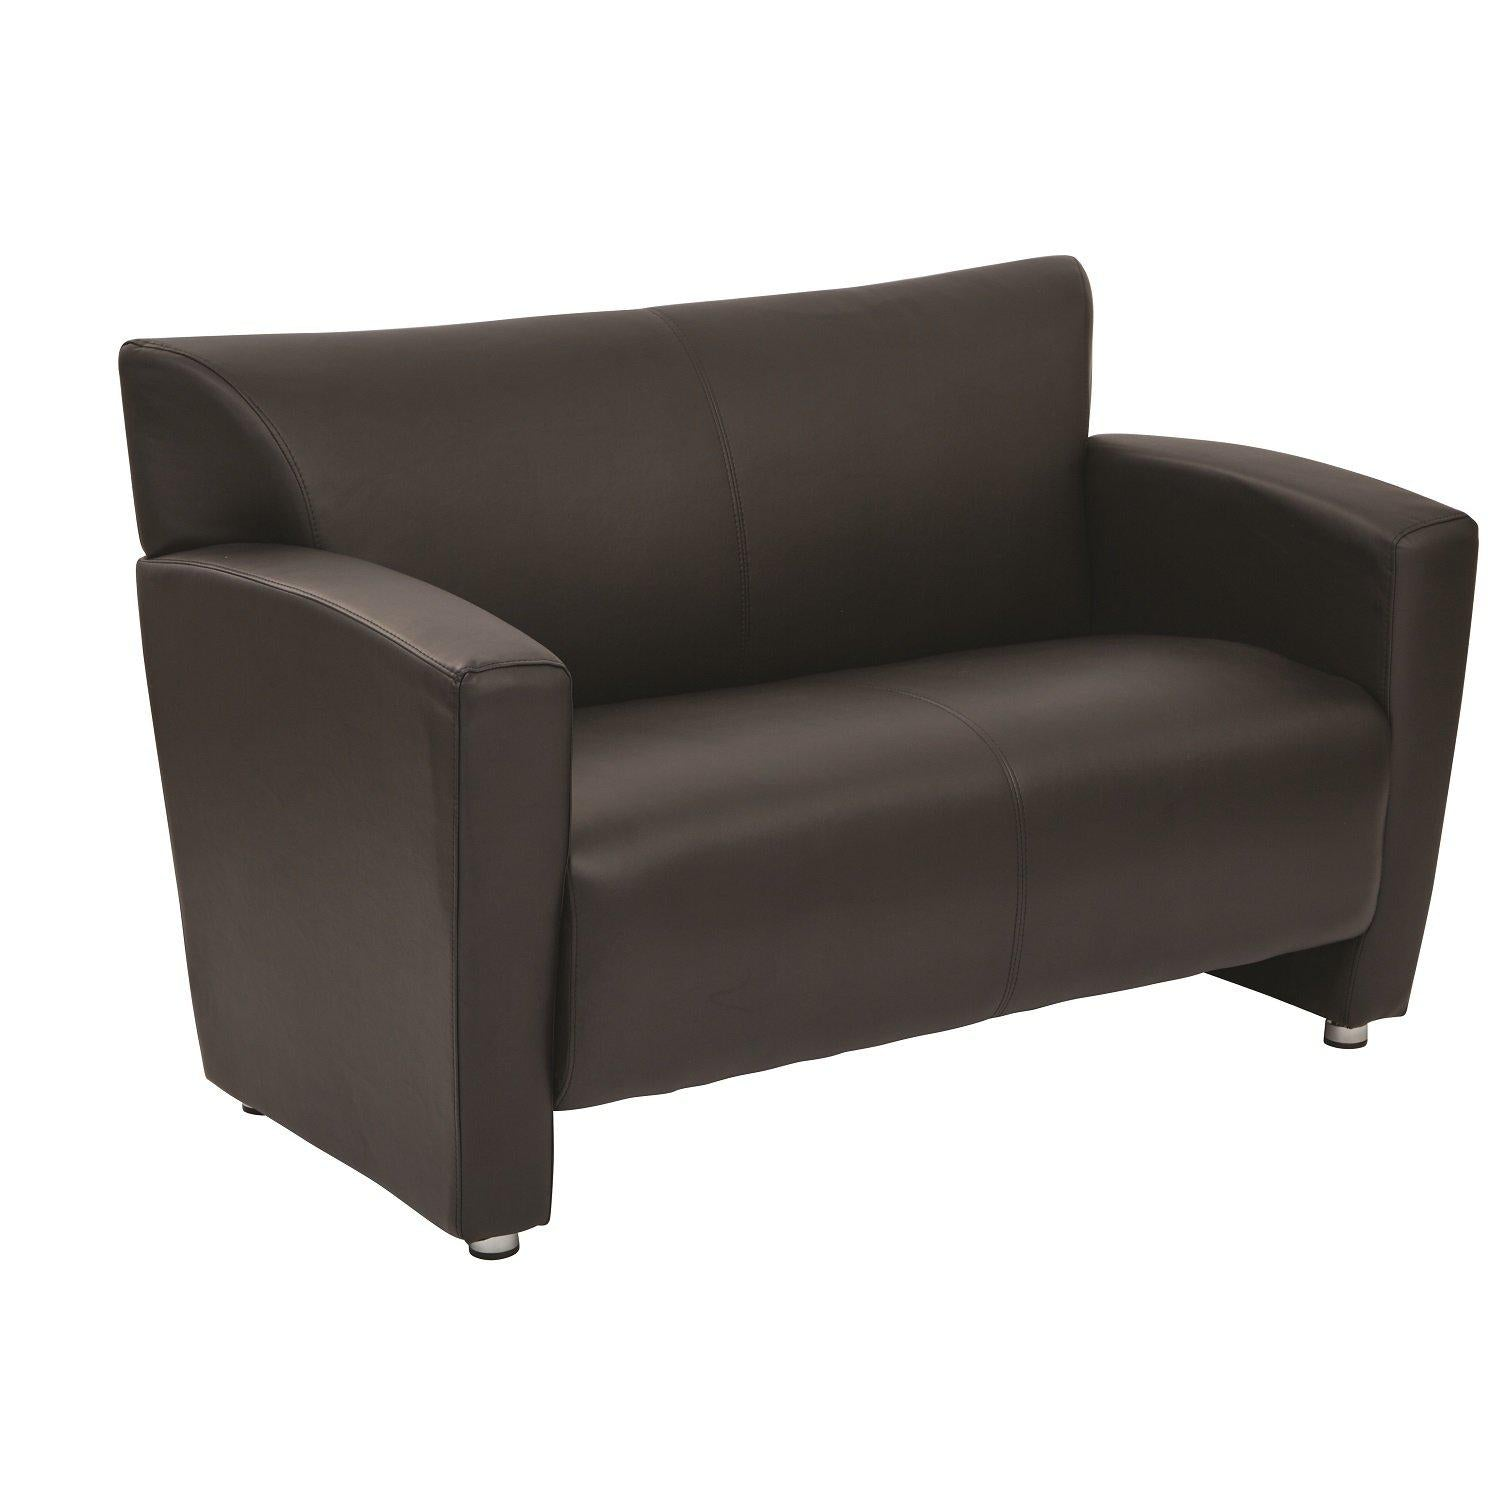 Black Faux Leather Loveseat with Silver Finish Legs